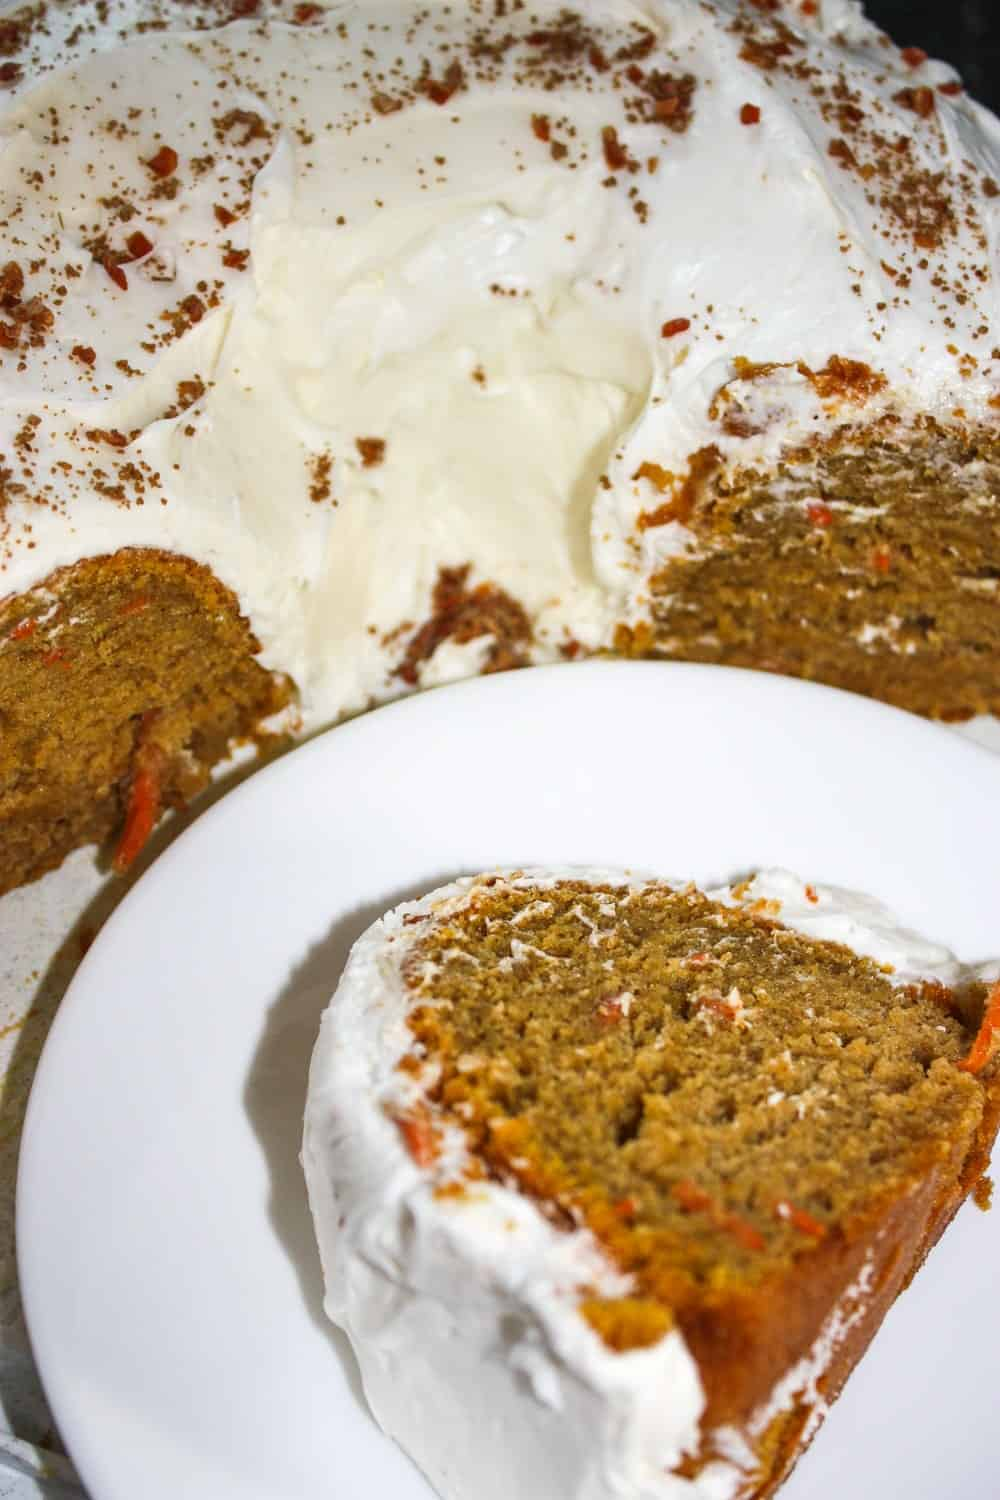 The flavours of fall suit both pumpkin cake and carrot cake so I decided to combine them and the result was this delicious gluten free Pumpkin Carrot Cake!